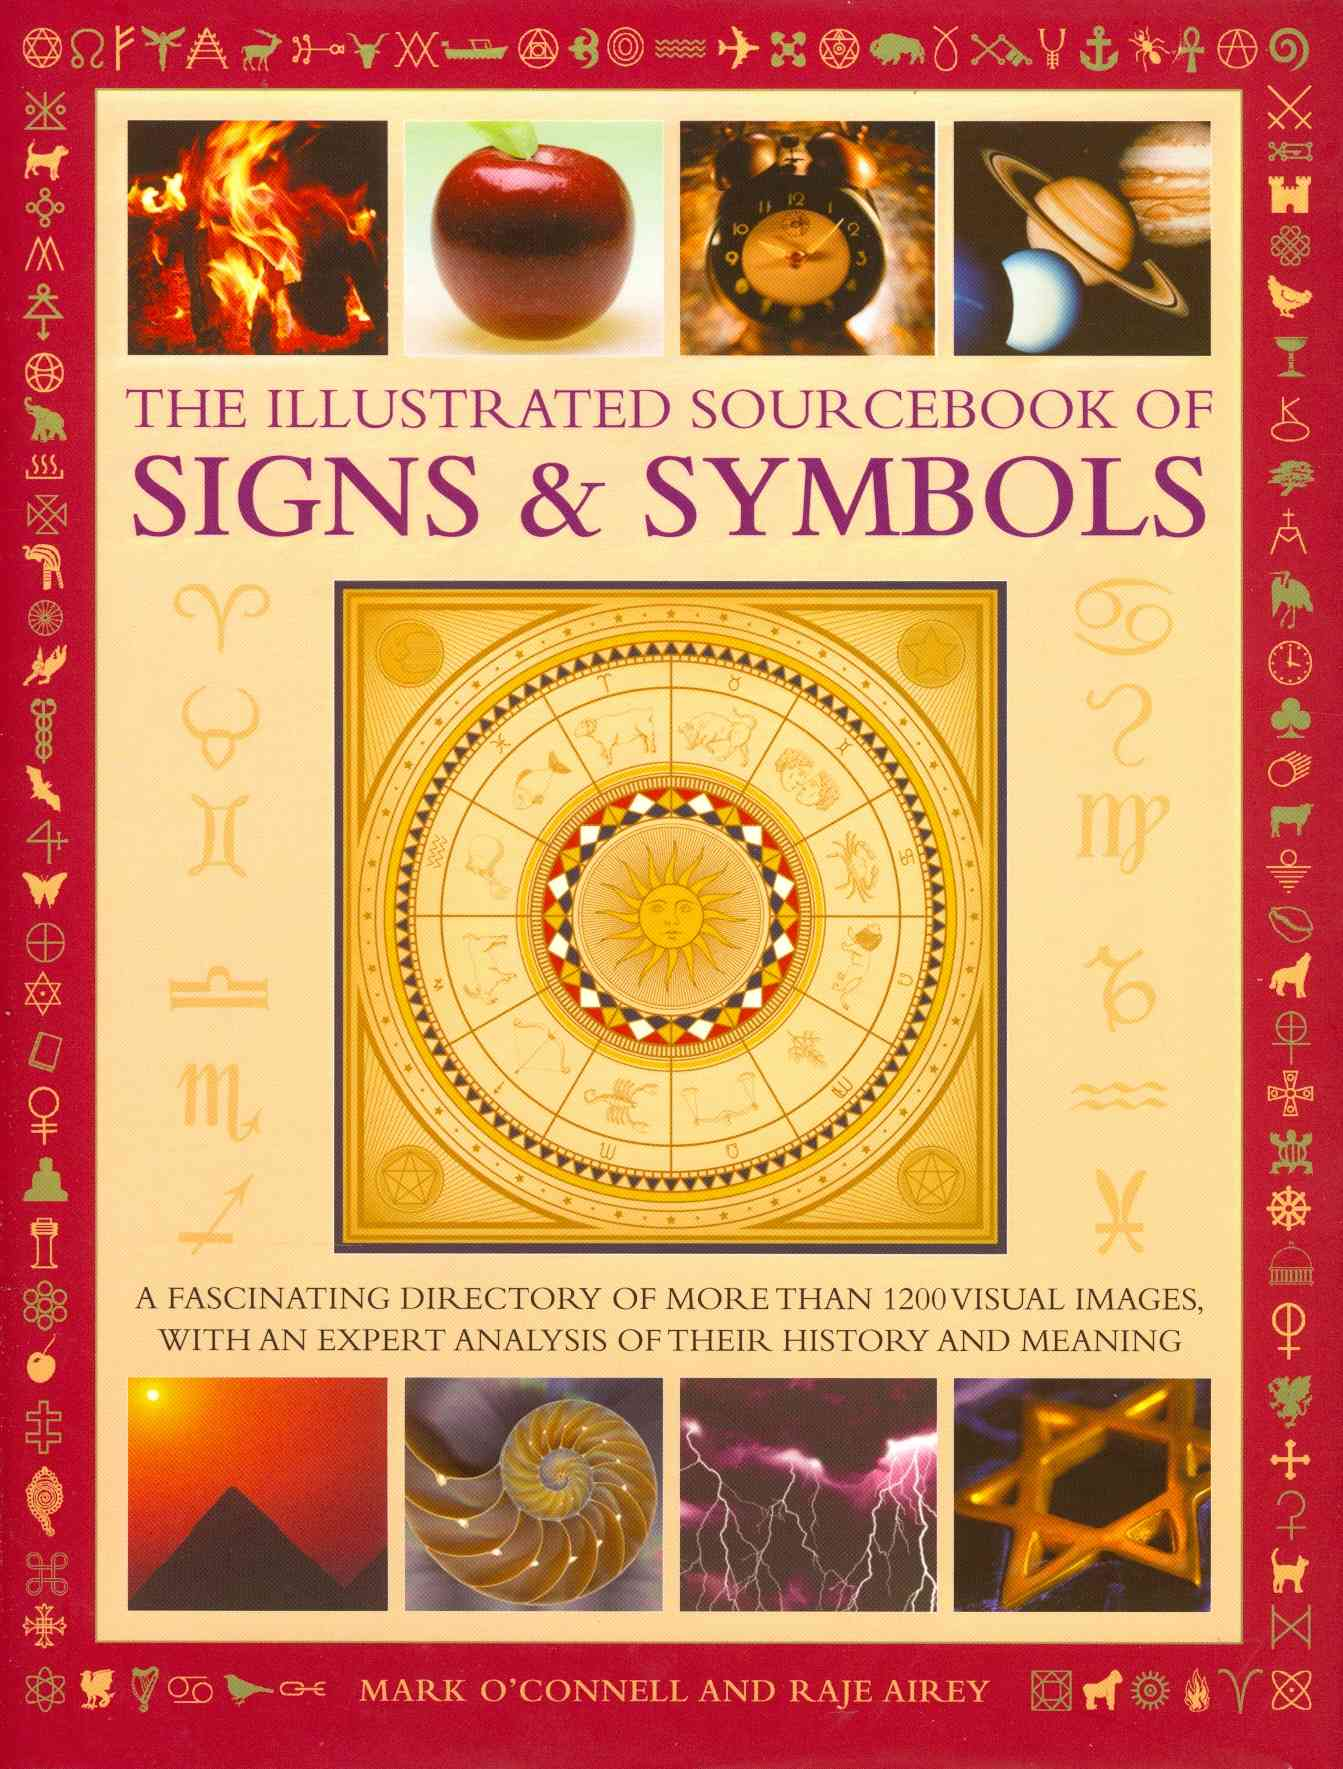 The Illustrated Sourcebook of Signs & Symbols By O'Connell, Mark/ Airey, Raje